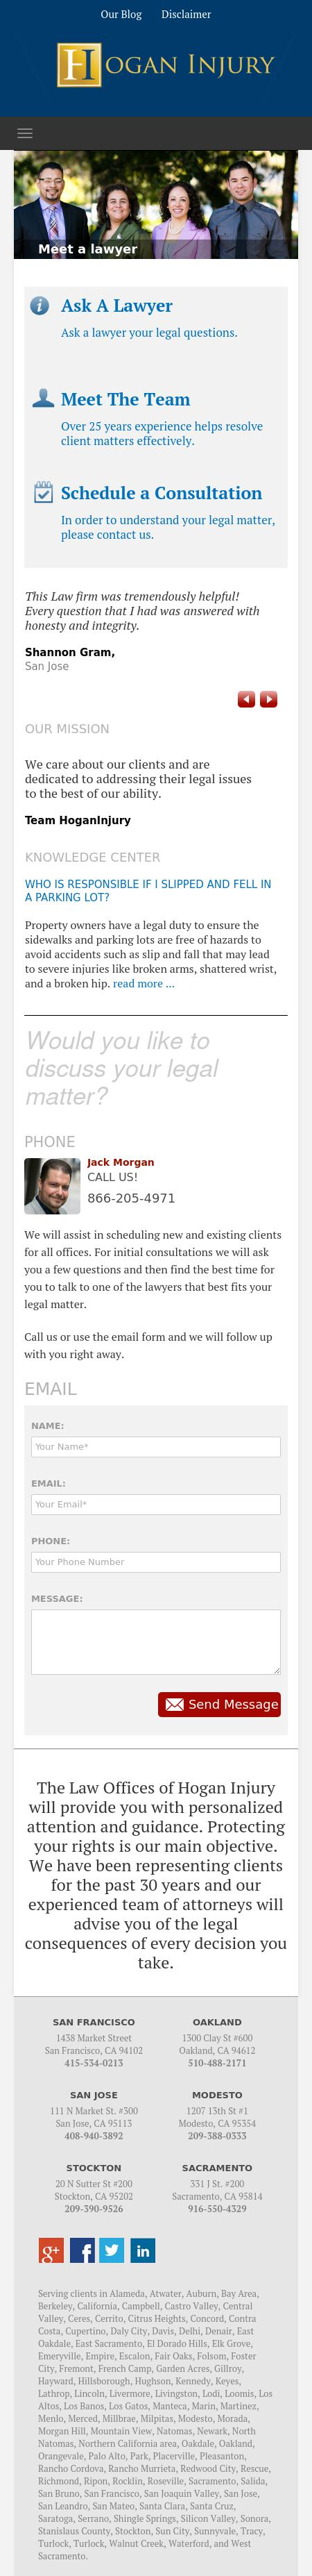 Hogan Injury - San Jose CA Lawyers